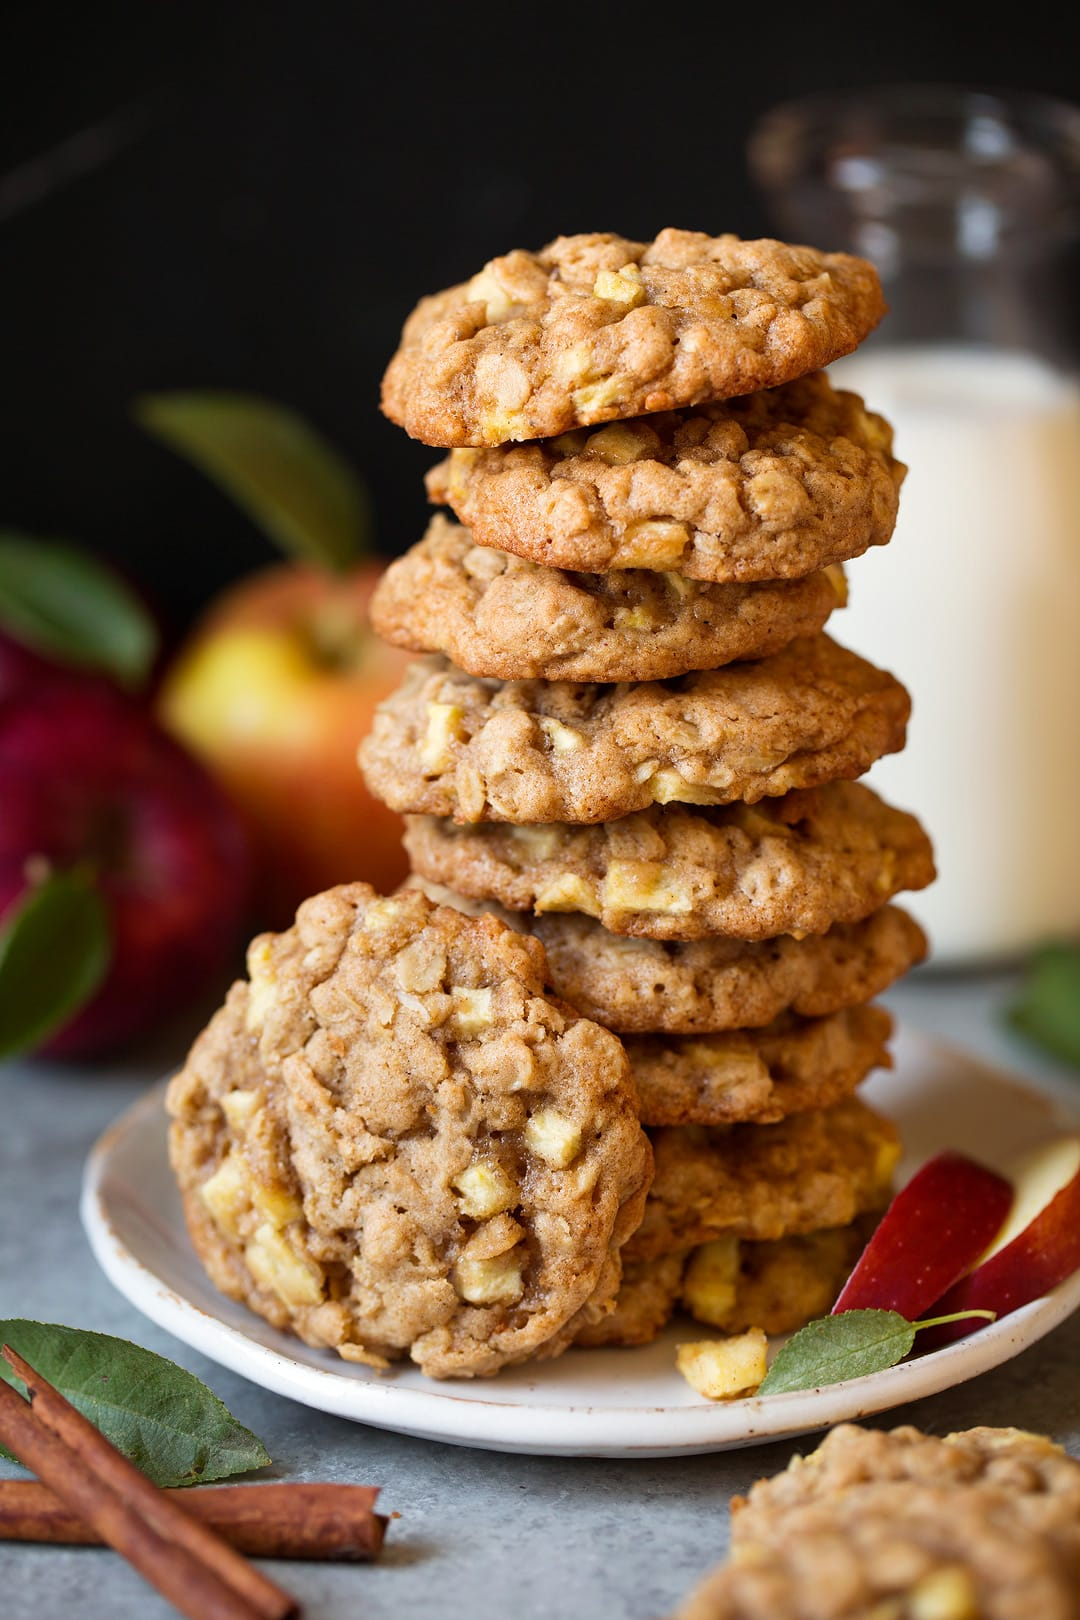 Apple Cinnamon Oatmeal Cookies - Cooking Classy